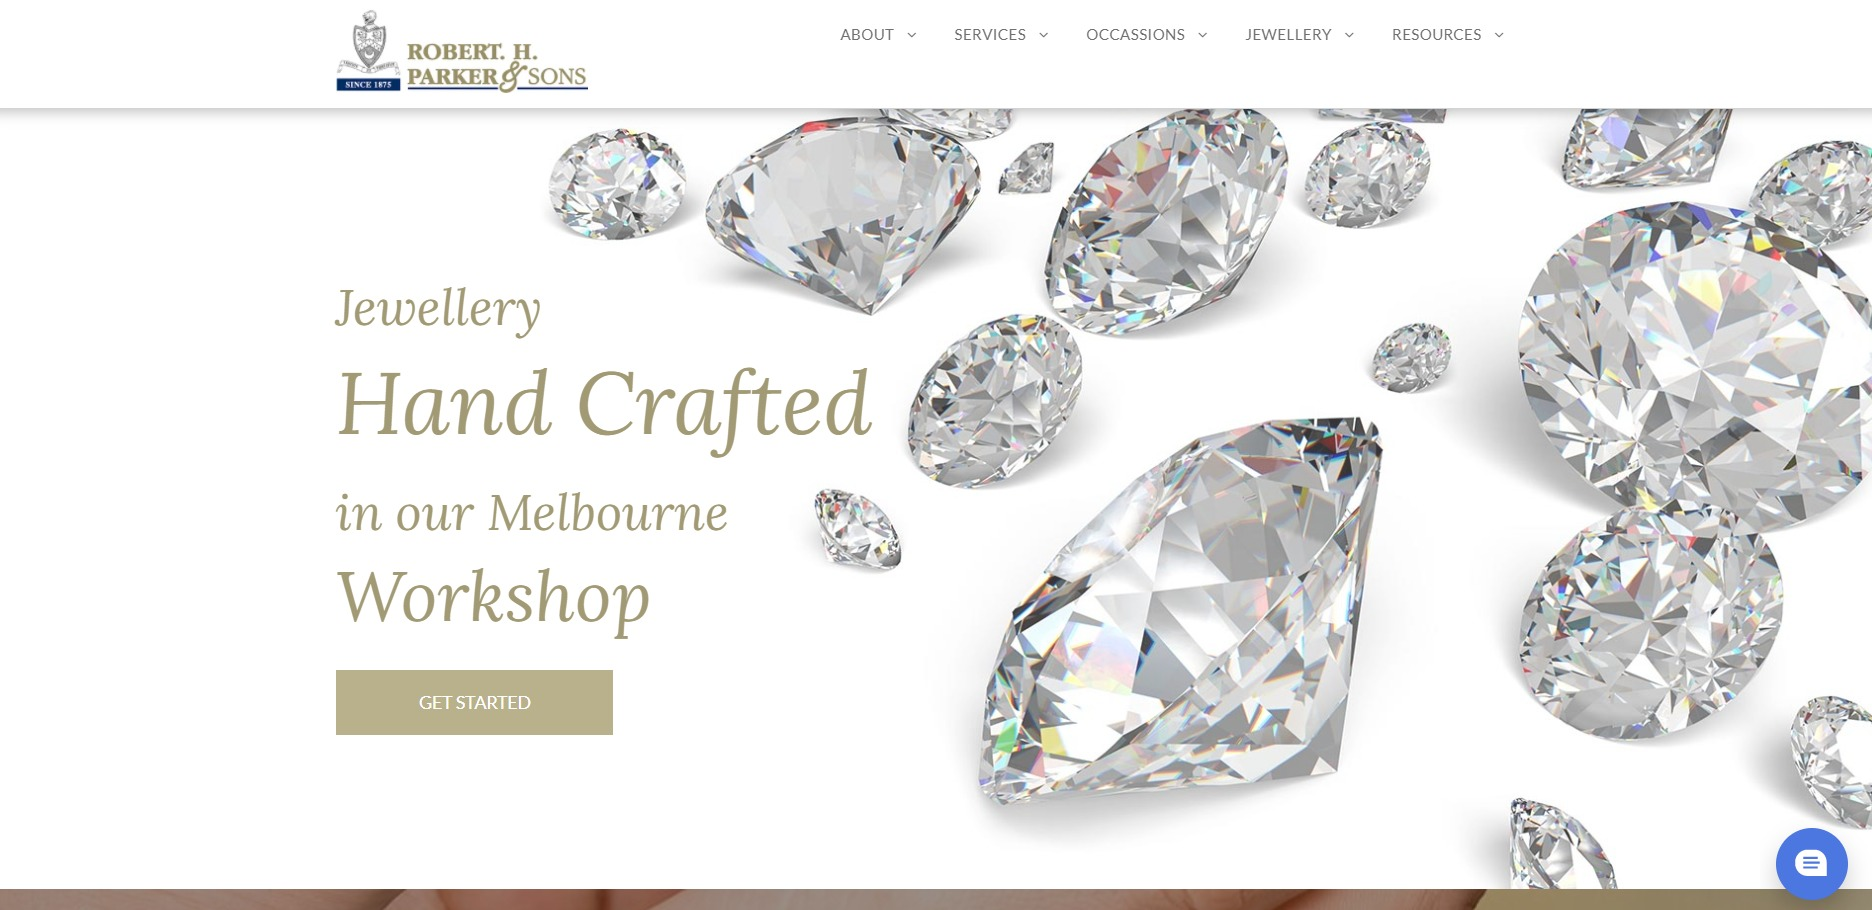 Robert H Parker & Sons Jewellers